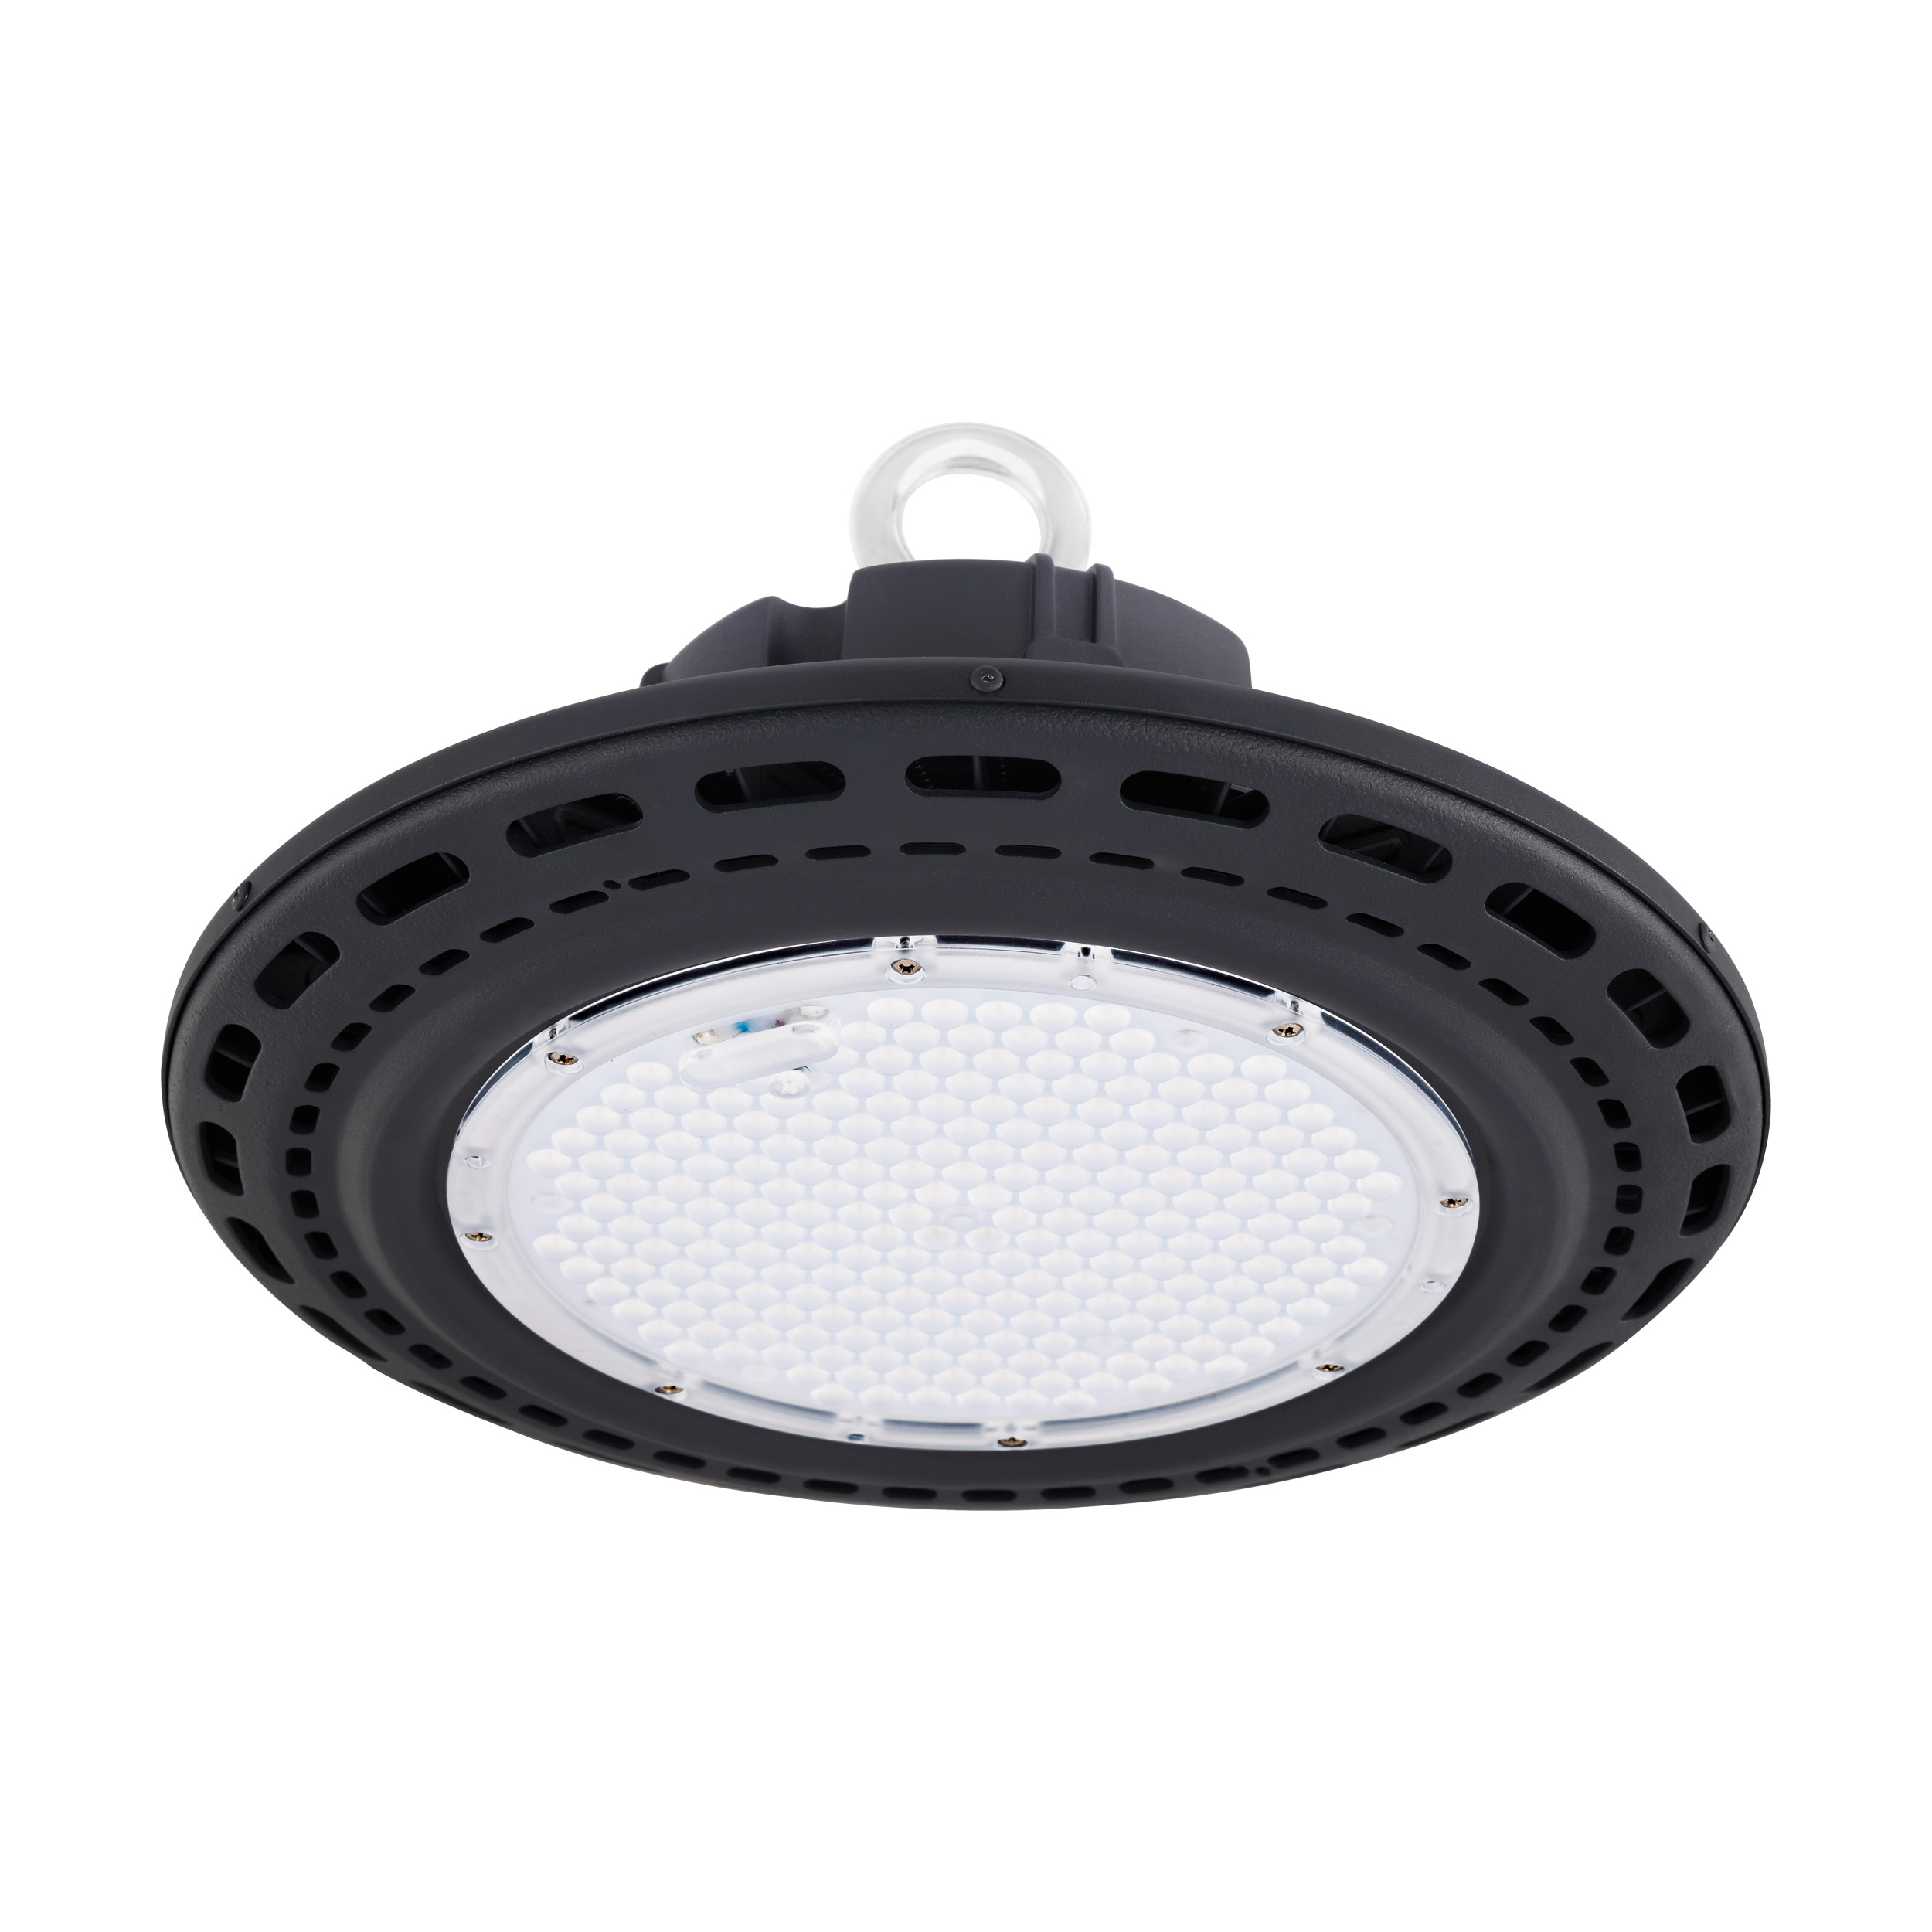 1 Stk LED High Bay Capano E27 150W anthrazit (RAL7016) LI63469---